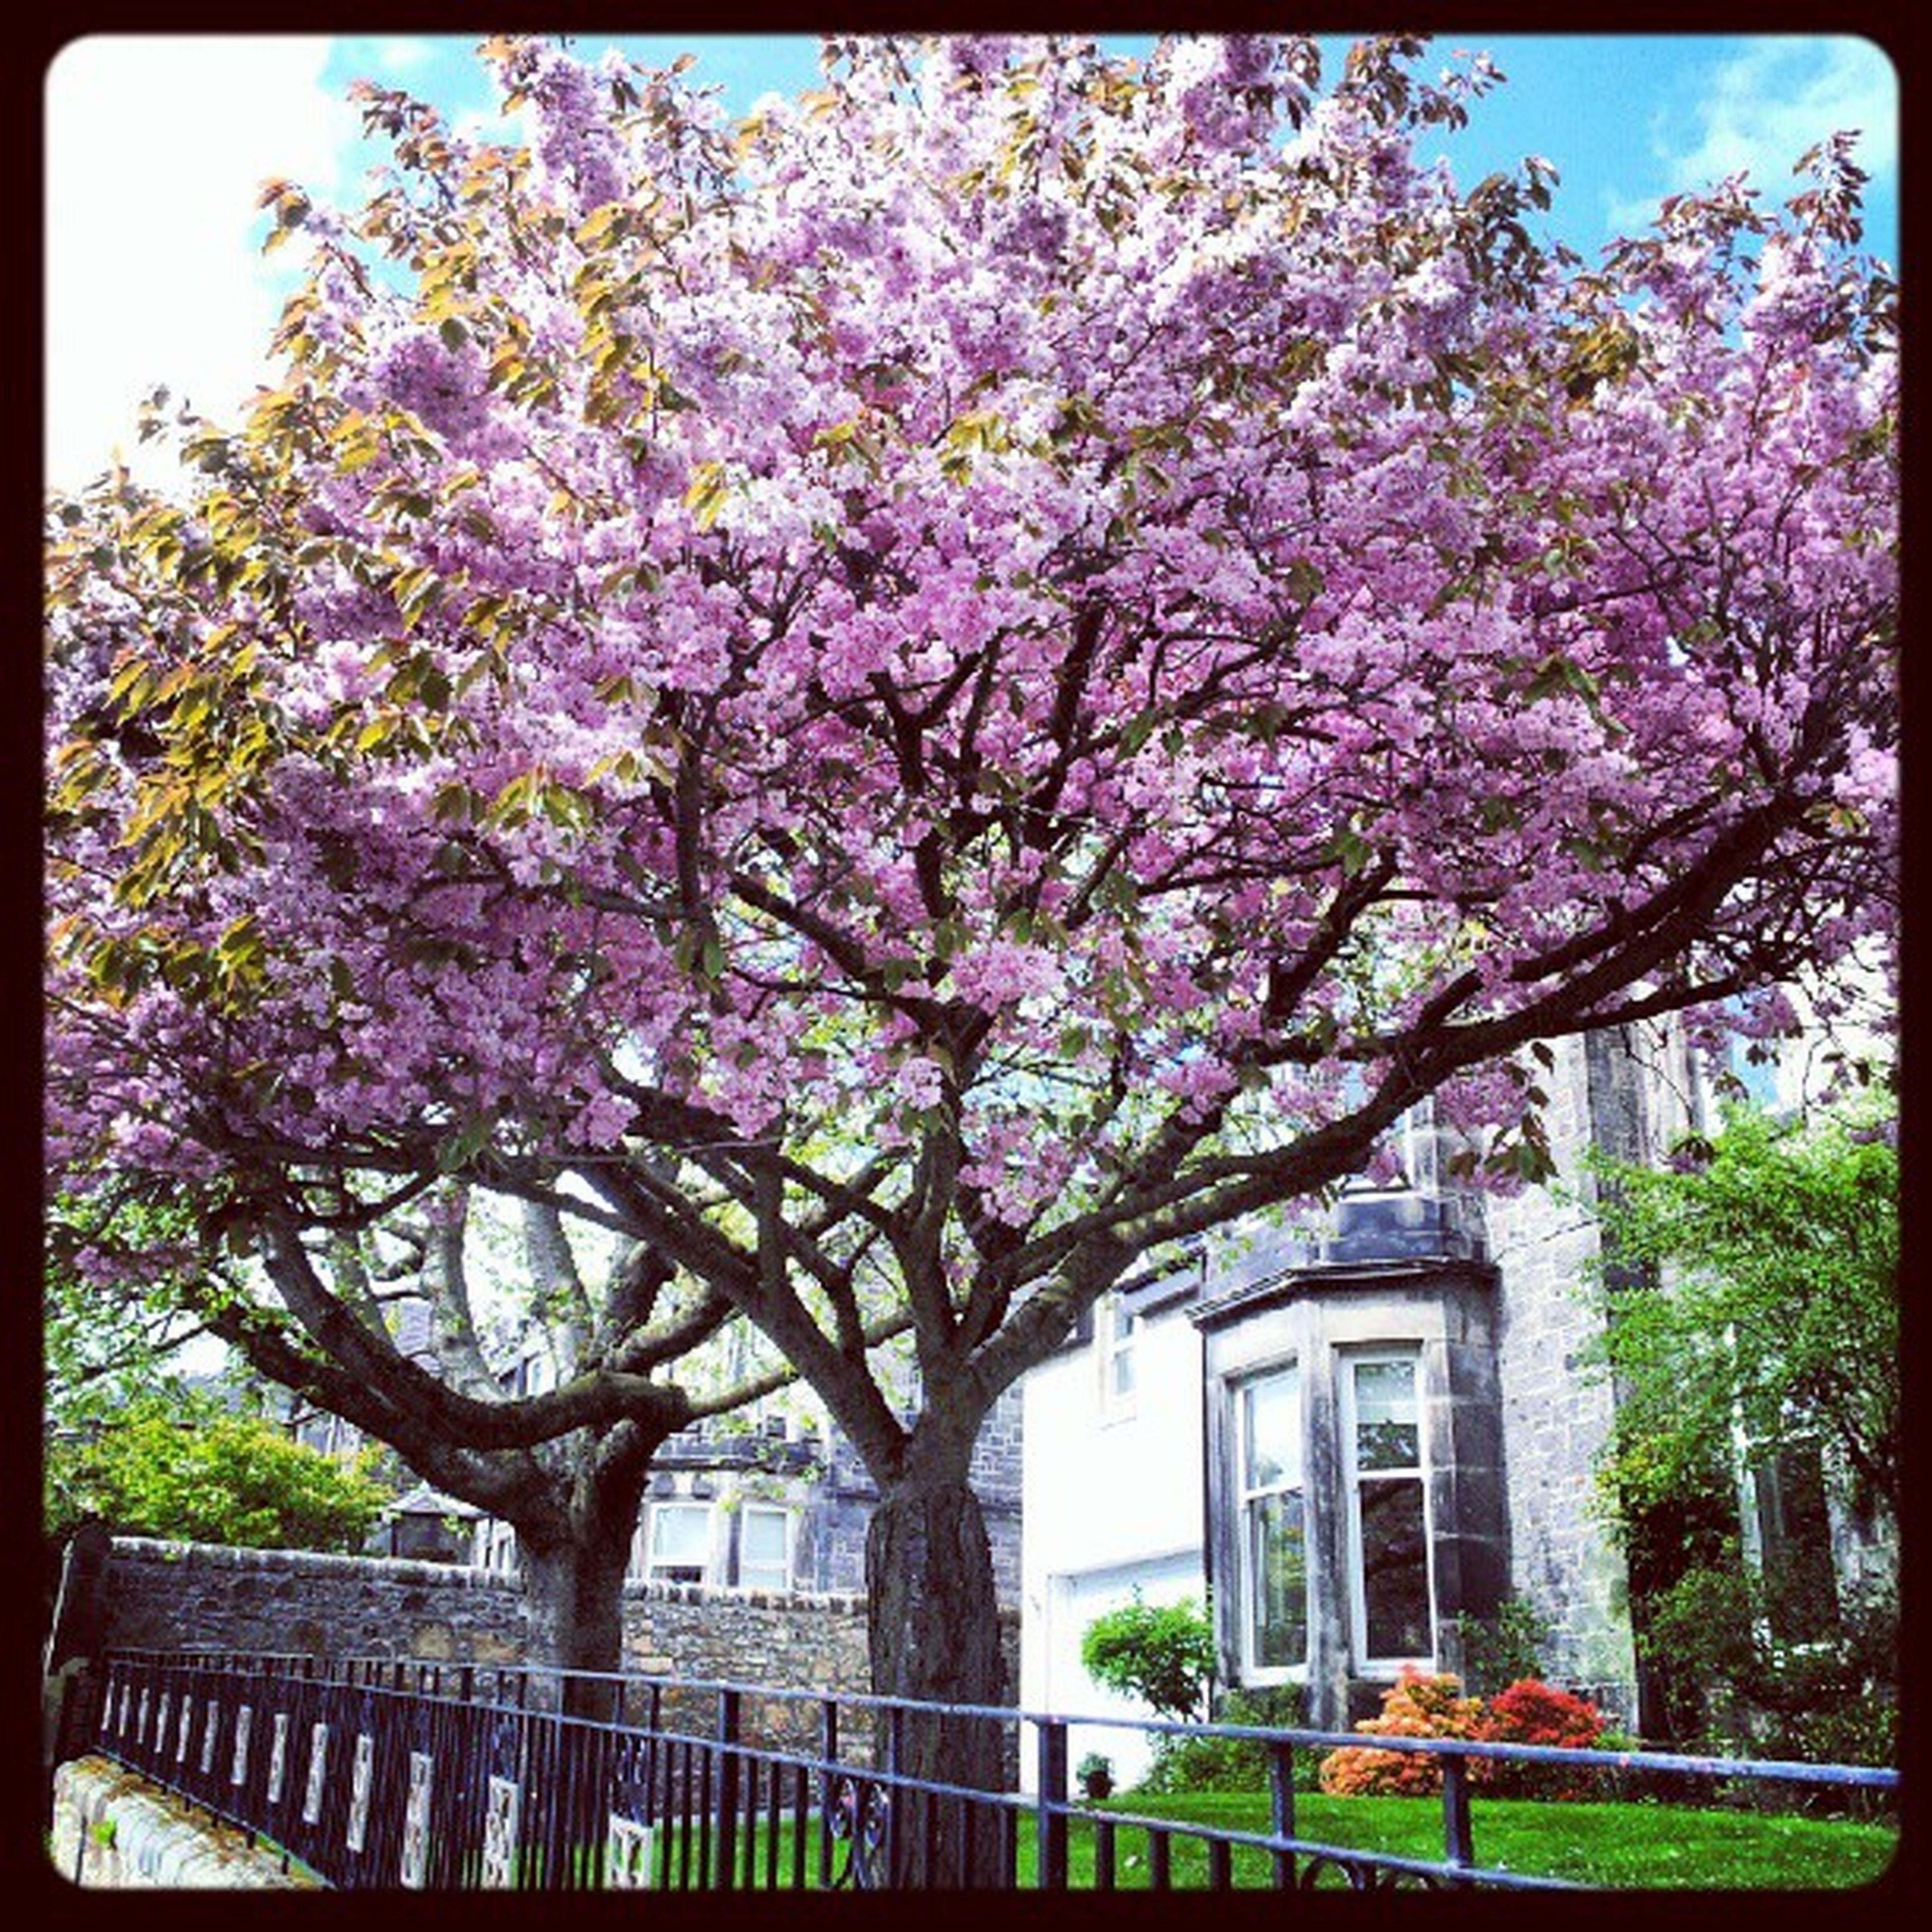 flower, tree, building exterior, growth, built structure, freshness, architecture, transfer print, branch, blossom, fragility, nature, auto post production filter, beauty in nature, pink color, in bloom, blooming, day, cherry blossom, city